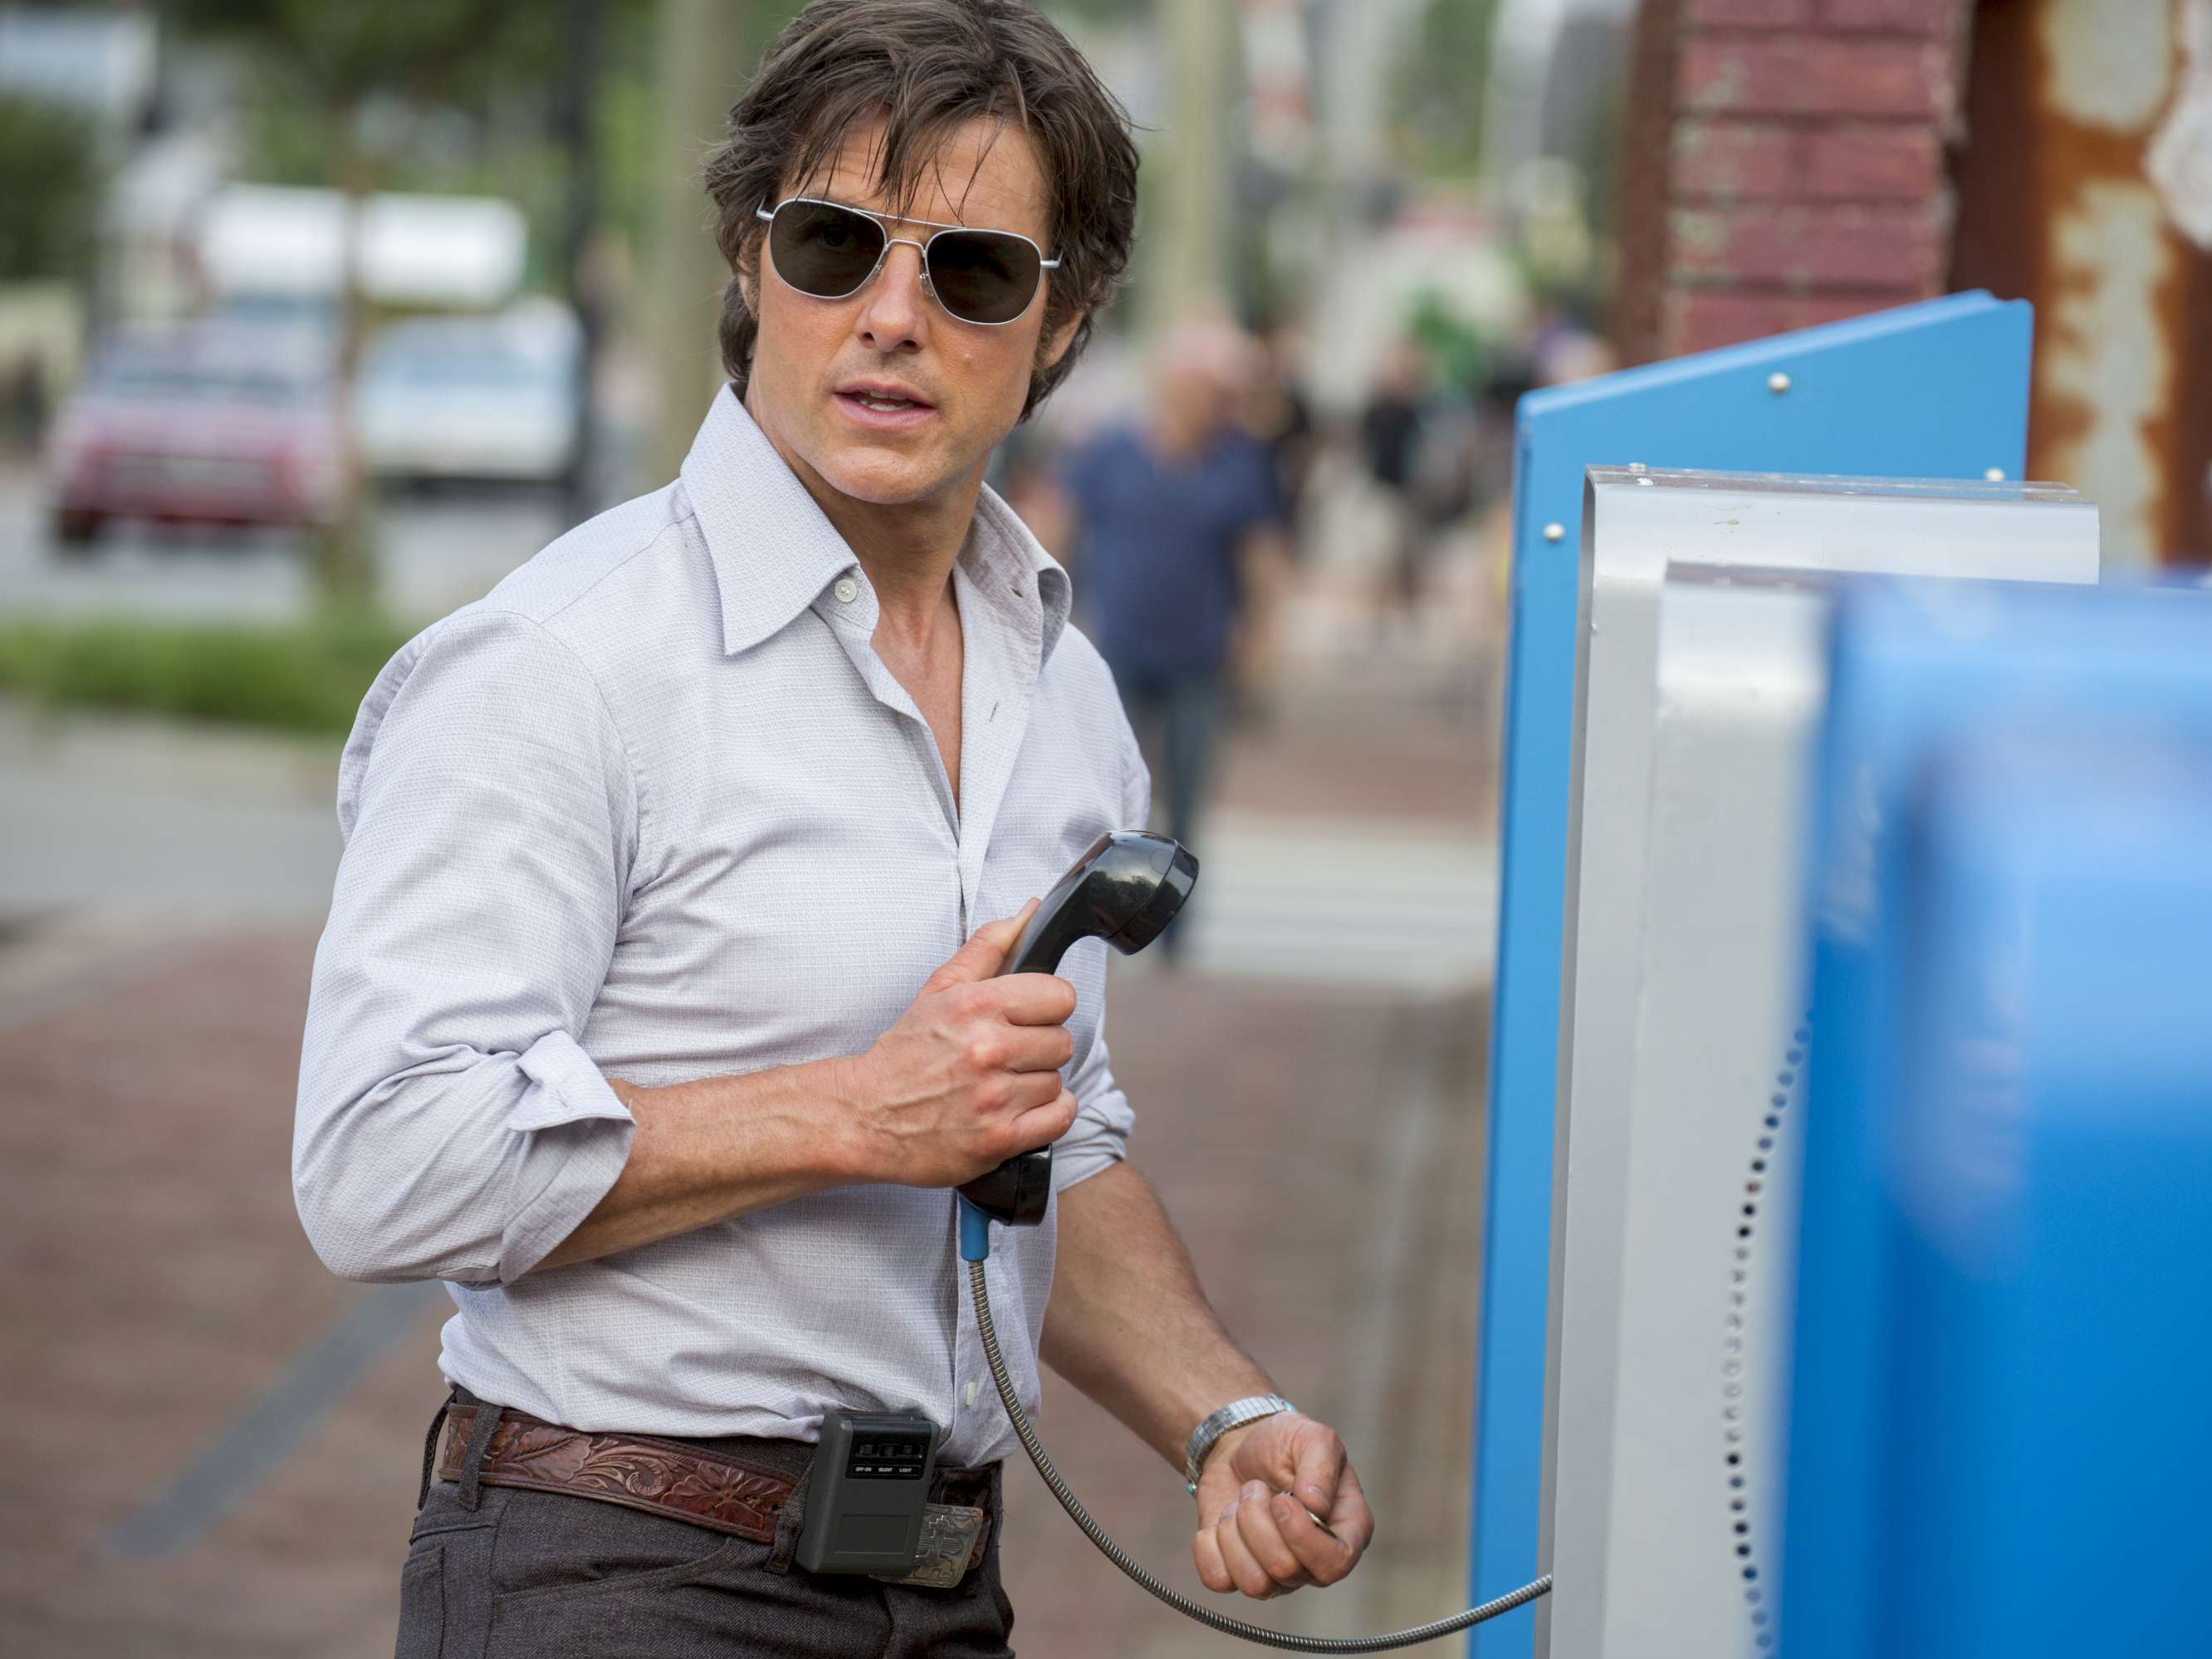 PHIL ON FILM: 'American Made' flies high with 80s drug trade thrills